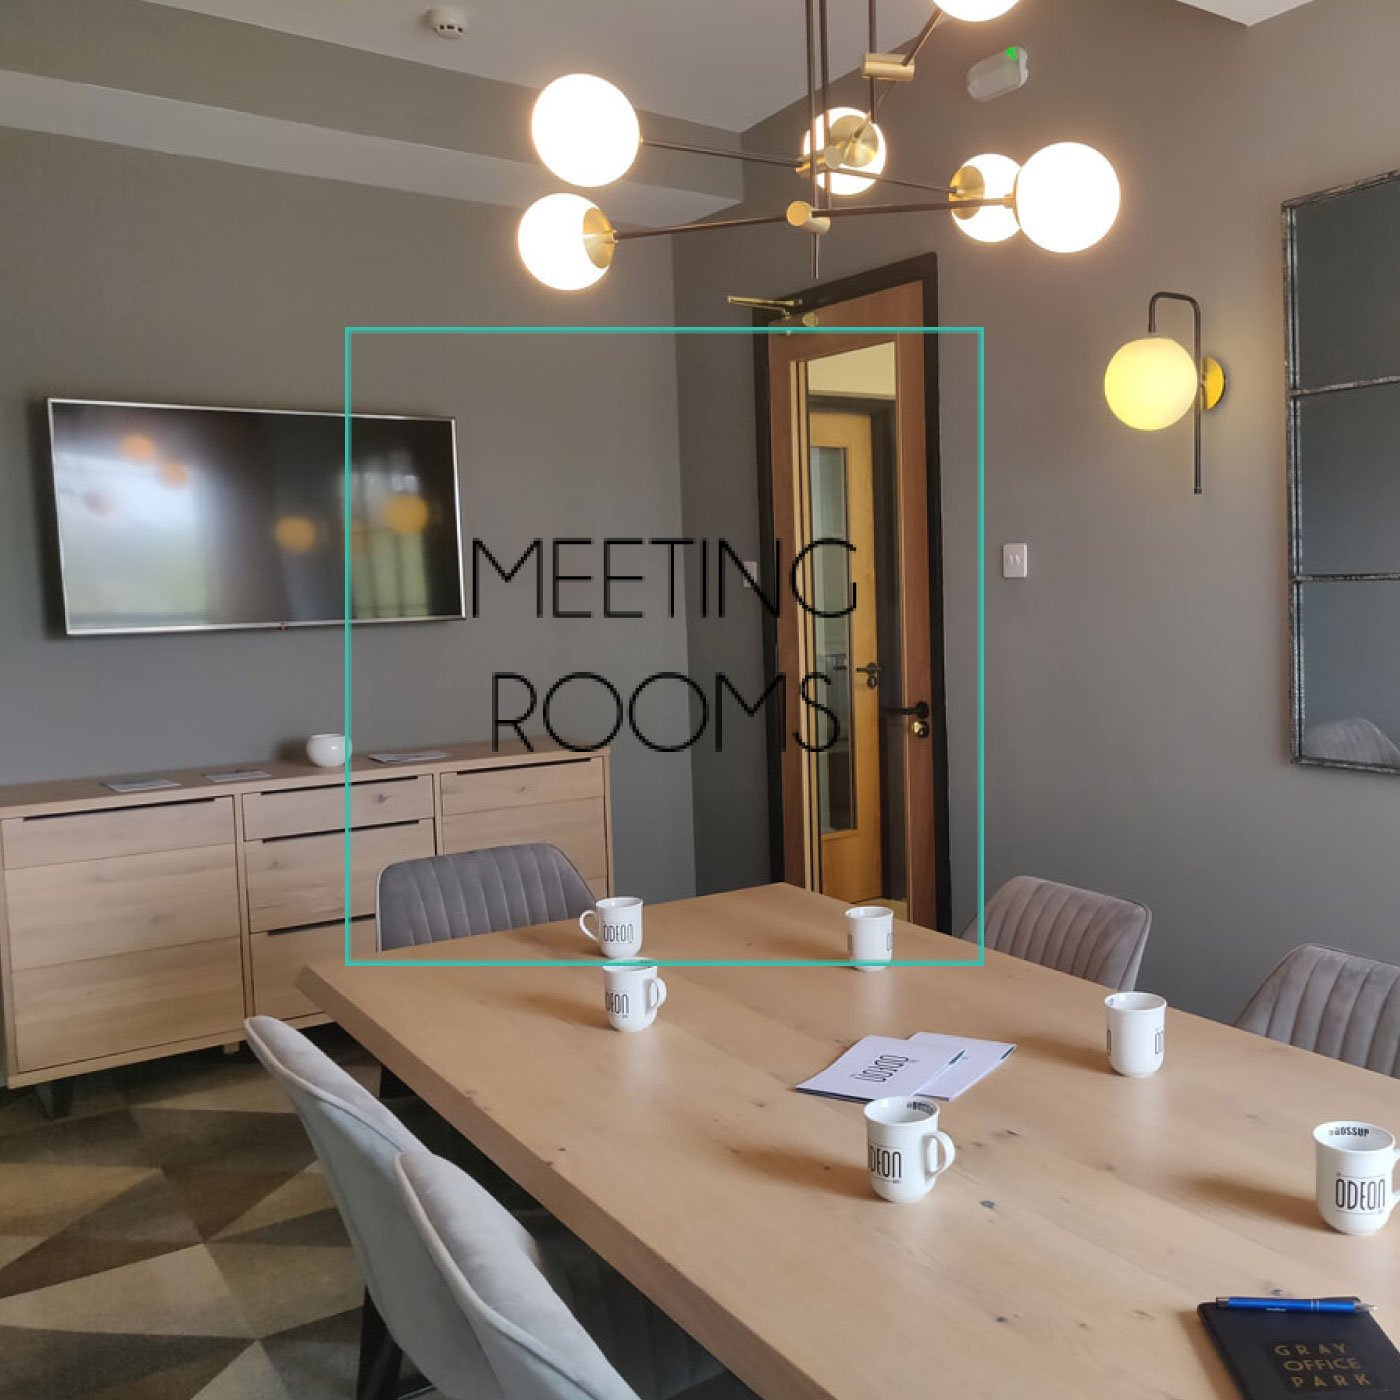 Meeting-rooms-Insta